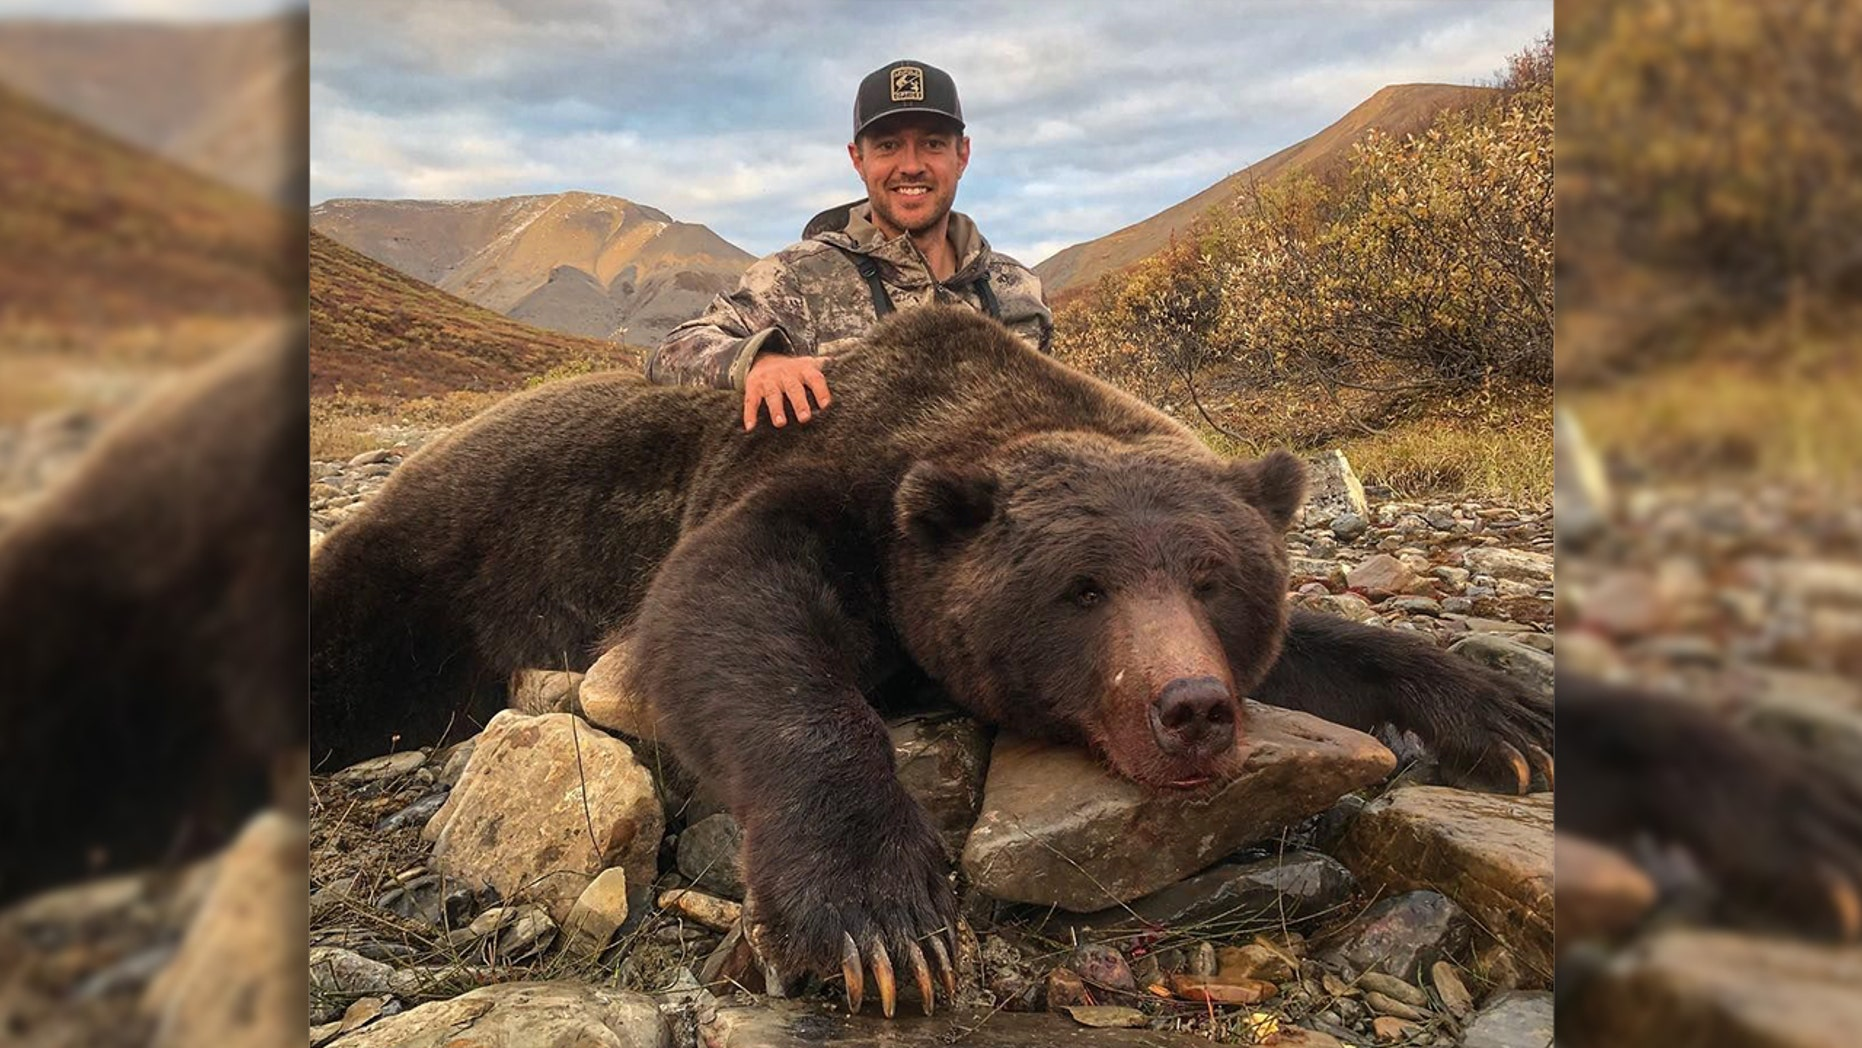 The former NHL player received near instant backlash for his hunting posts on social media.